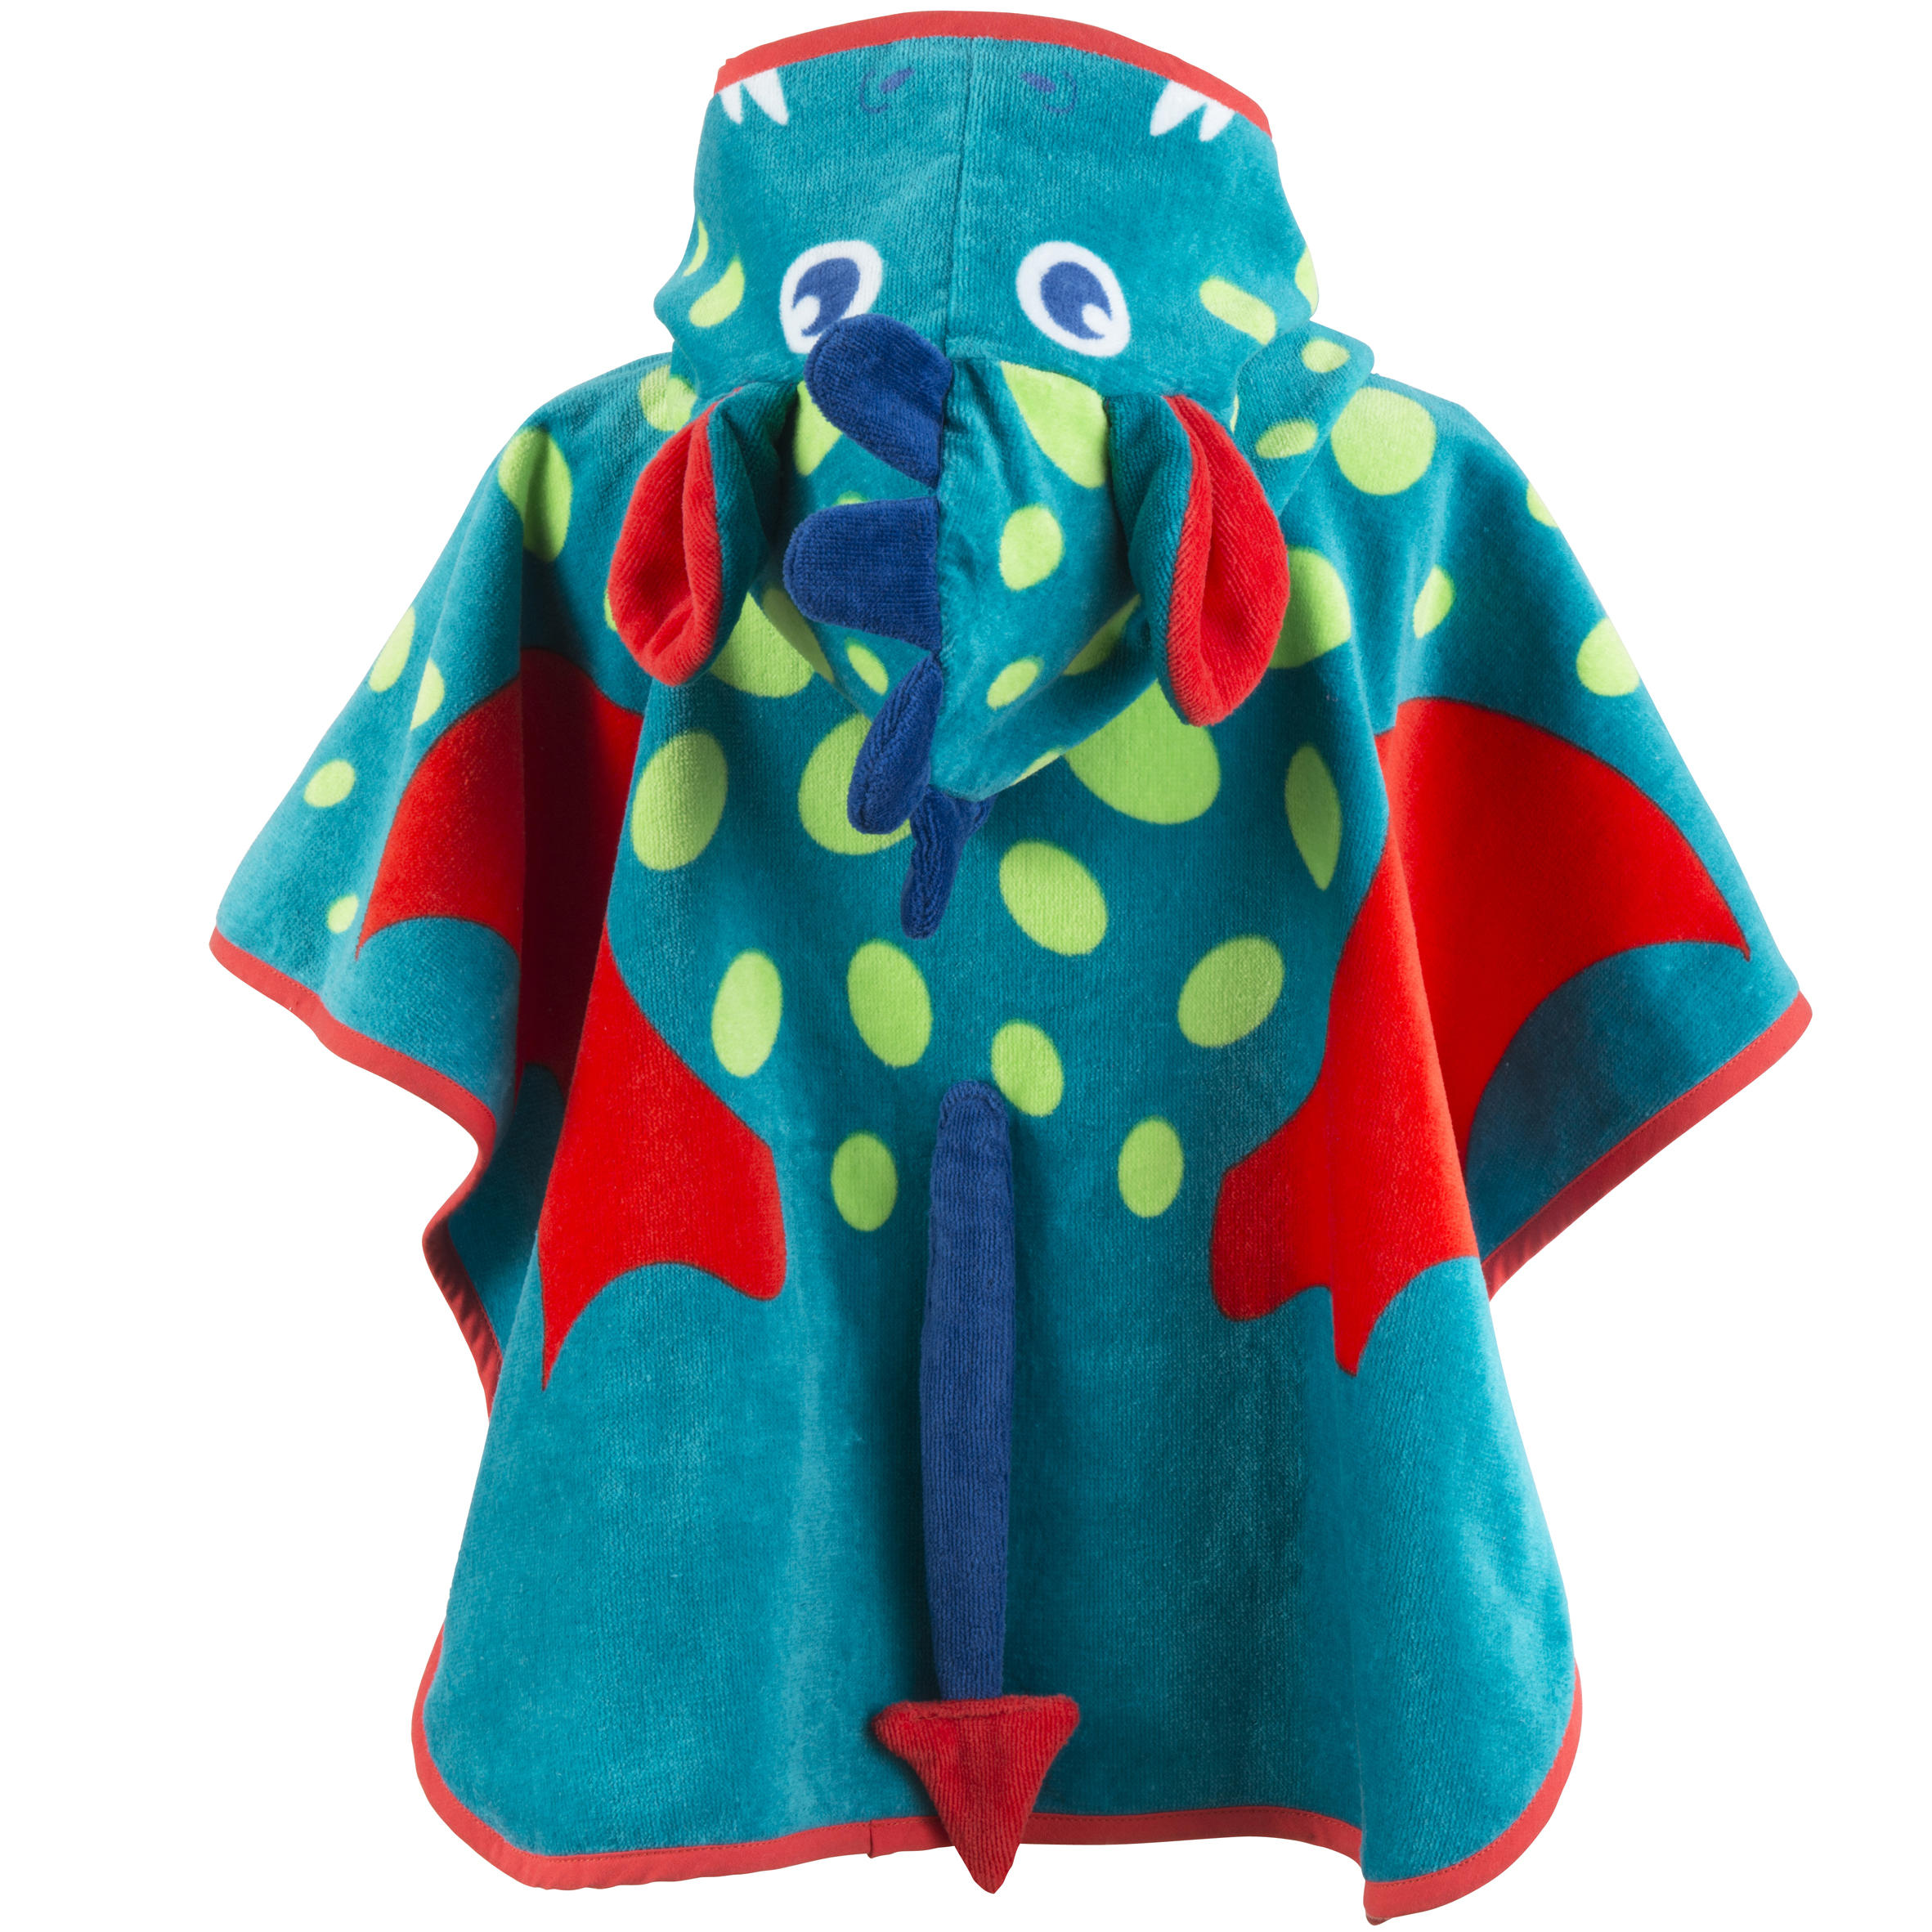 Stephan Baby Poncho Collection Bright Blue Water-Repellent Rain Poncho Fits 6-18 Months Green